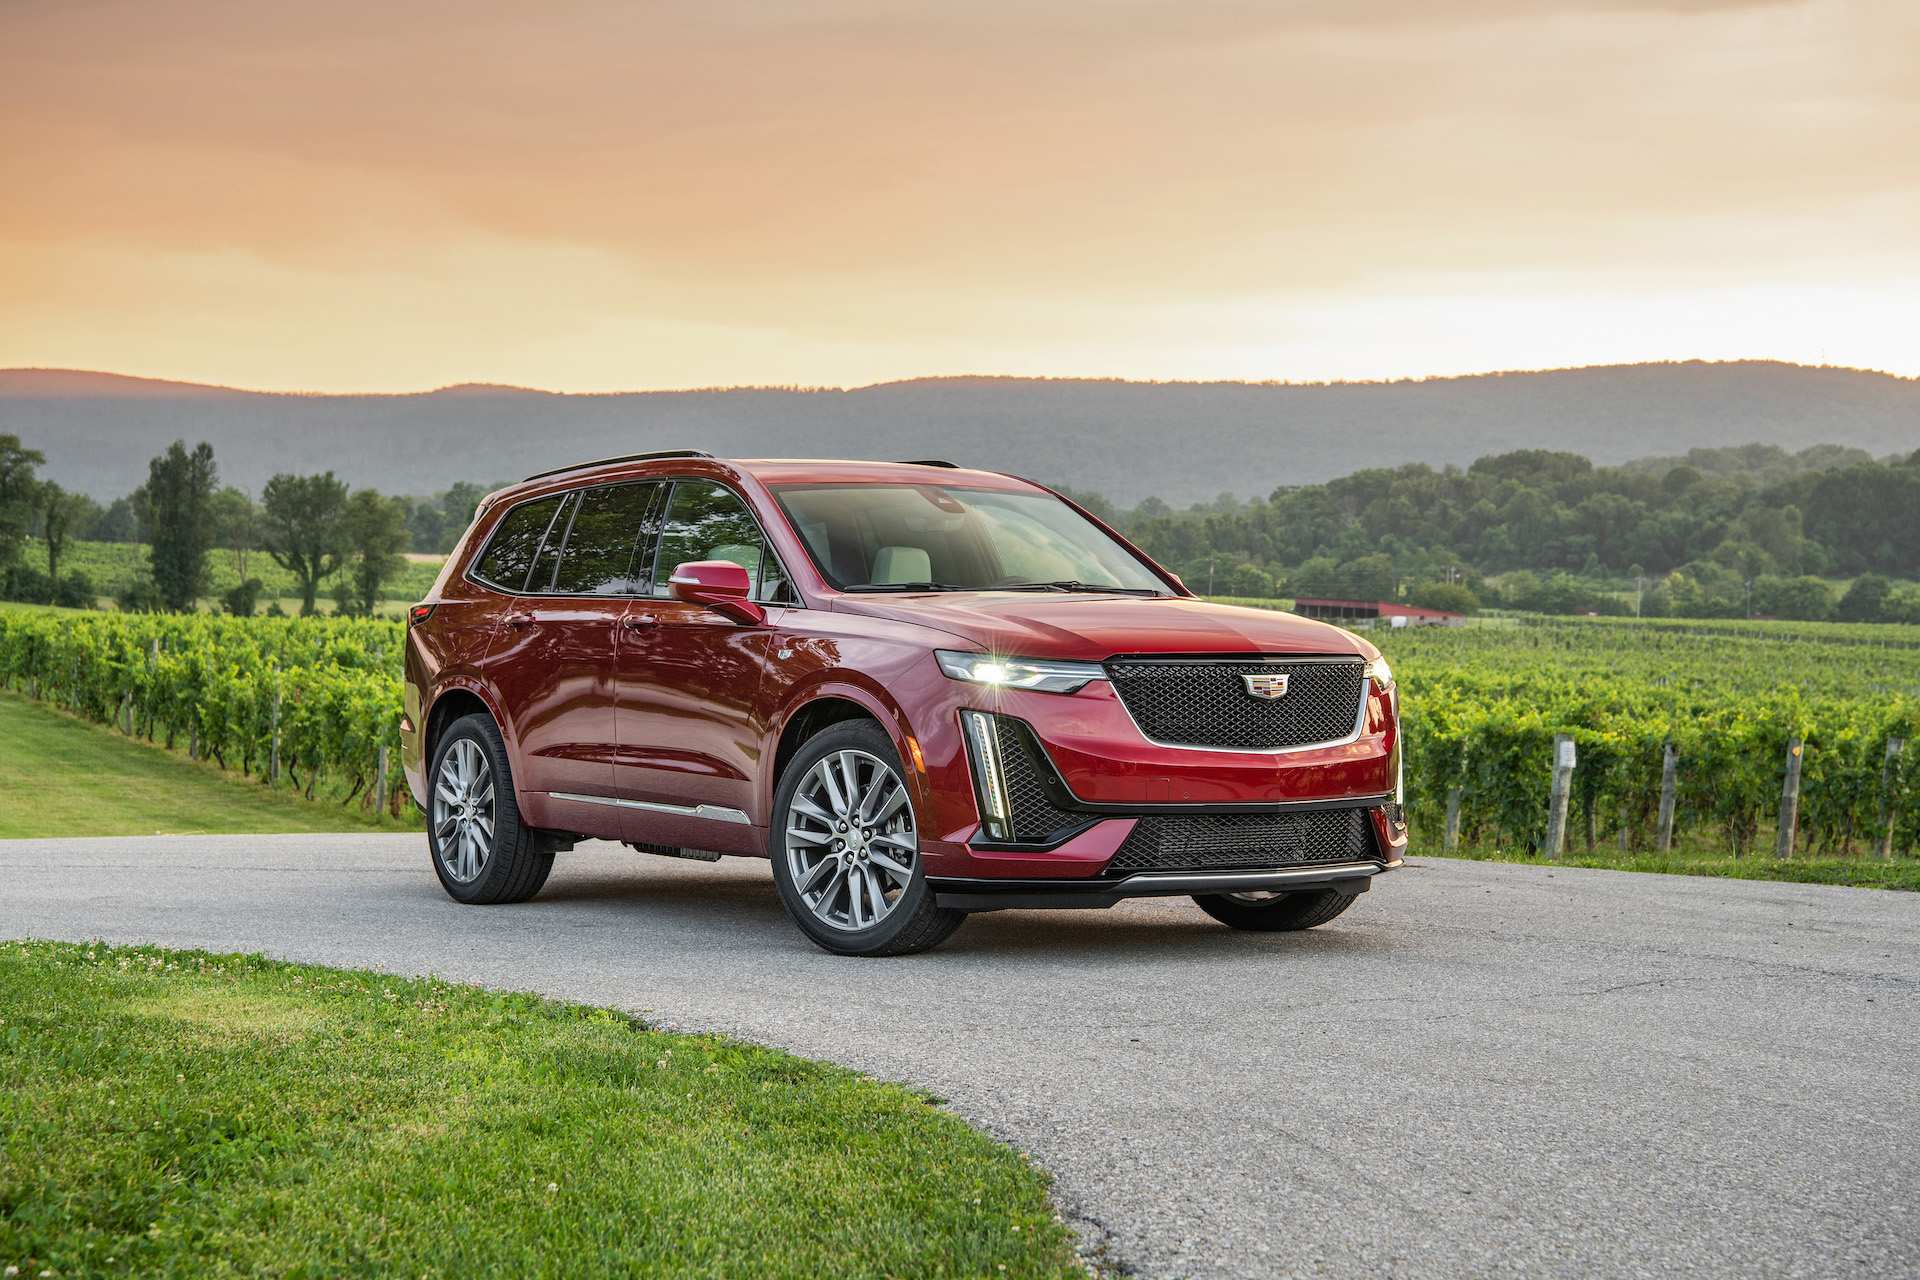 72 The Best 2020 Cadillac Xt6 Review Price